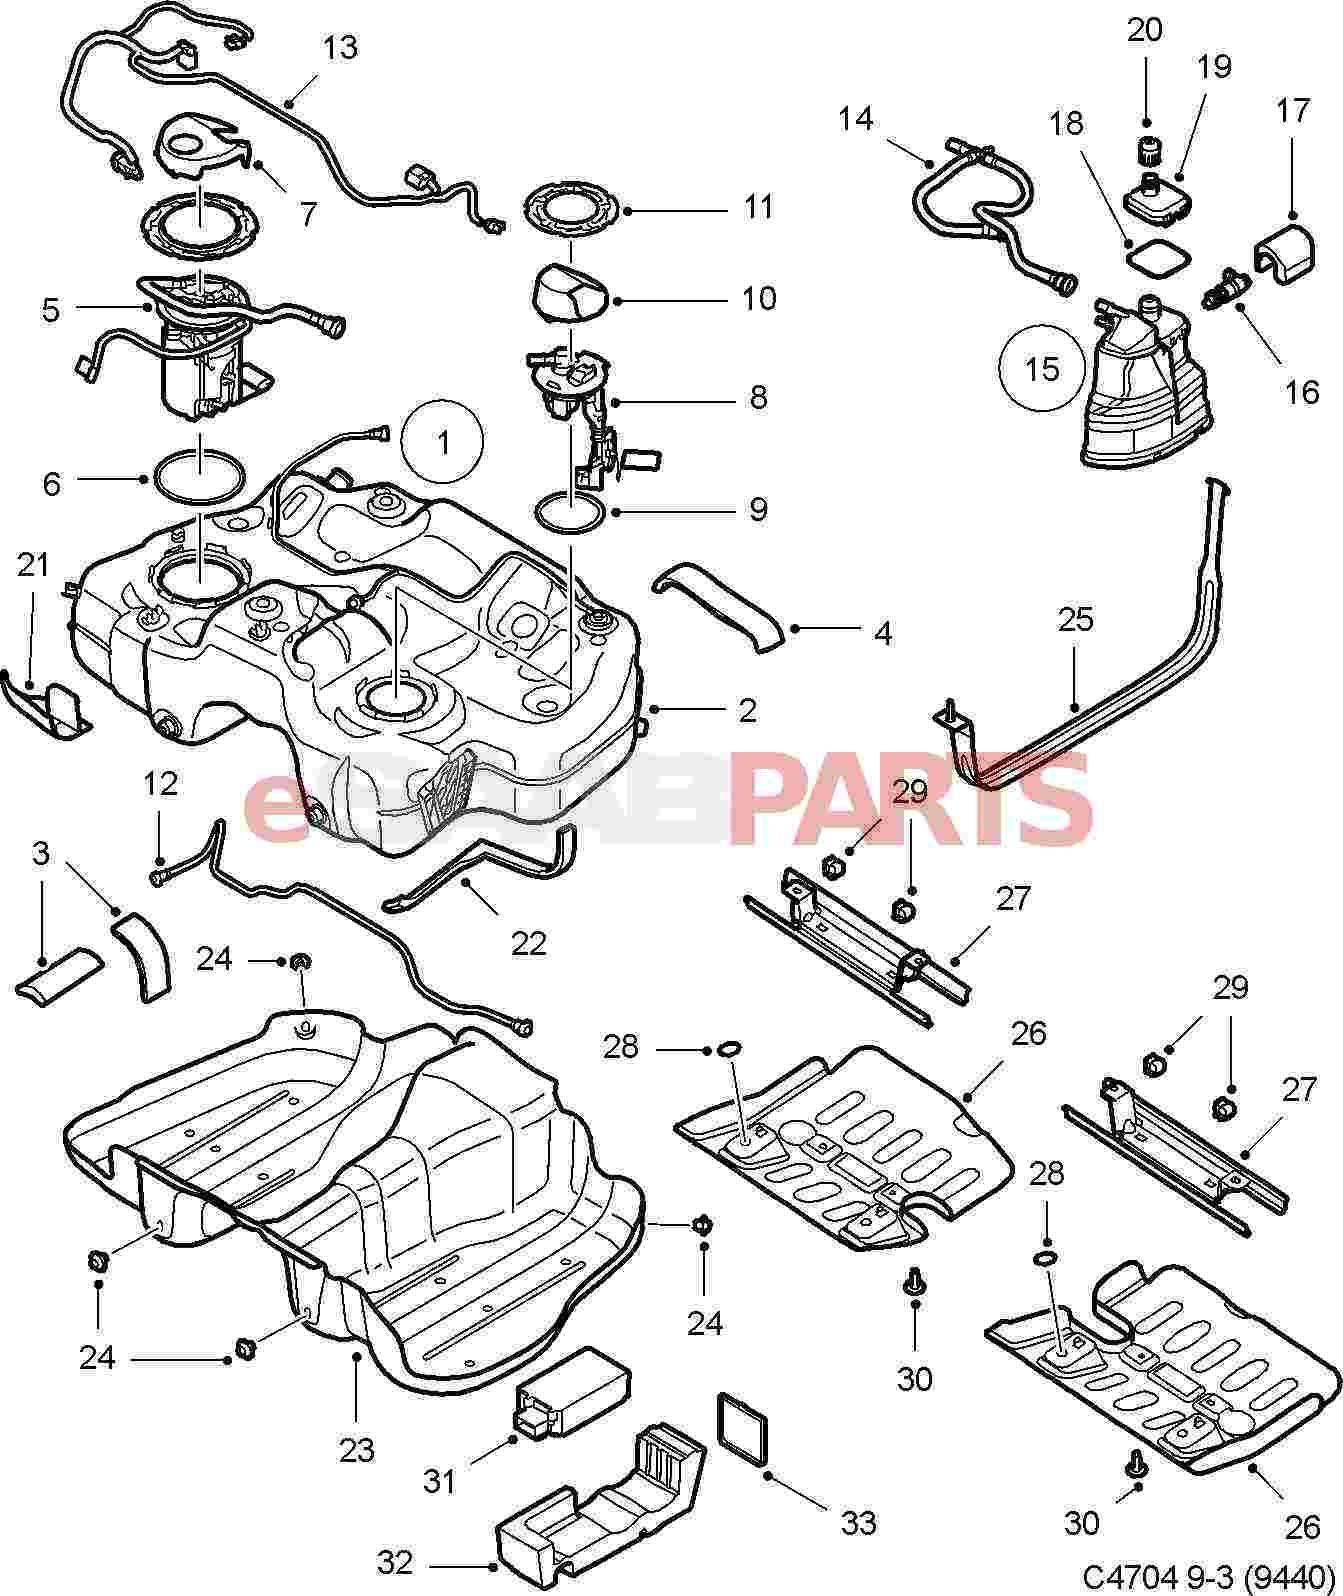 12780869 saab fuel pump v6 xwd genuine saab parts. Black Bedroom Furniture Sets. Home Design Ideas